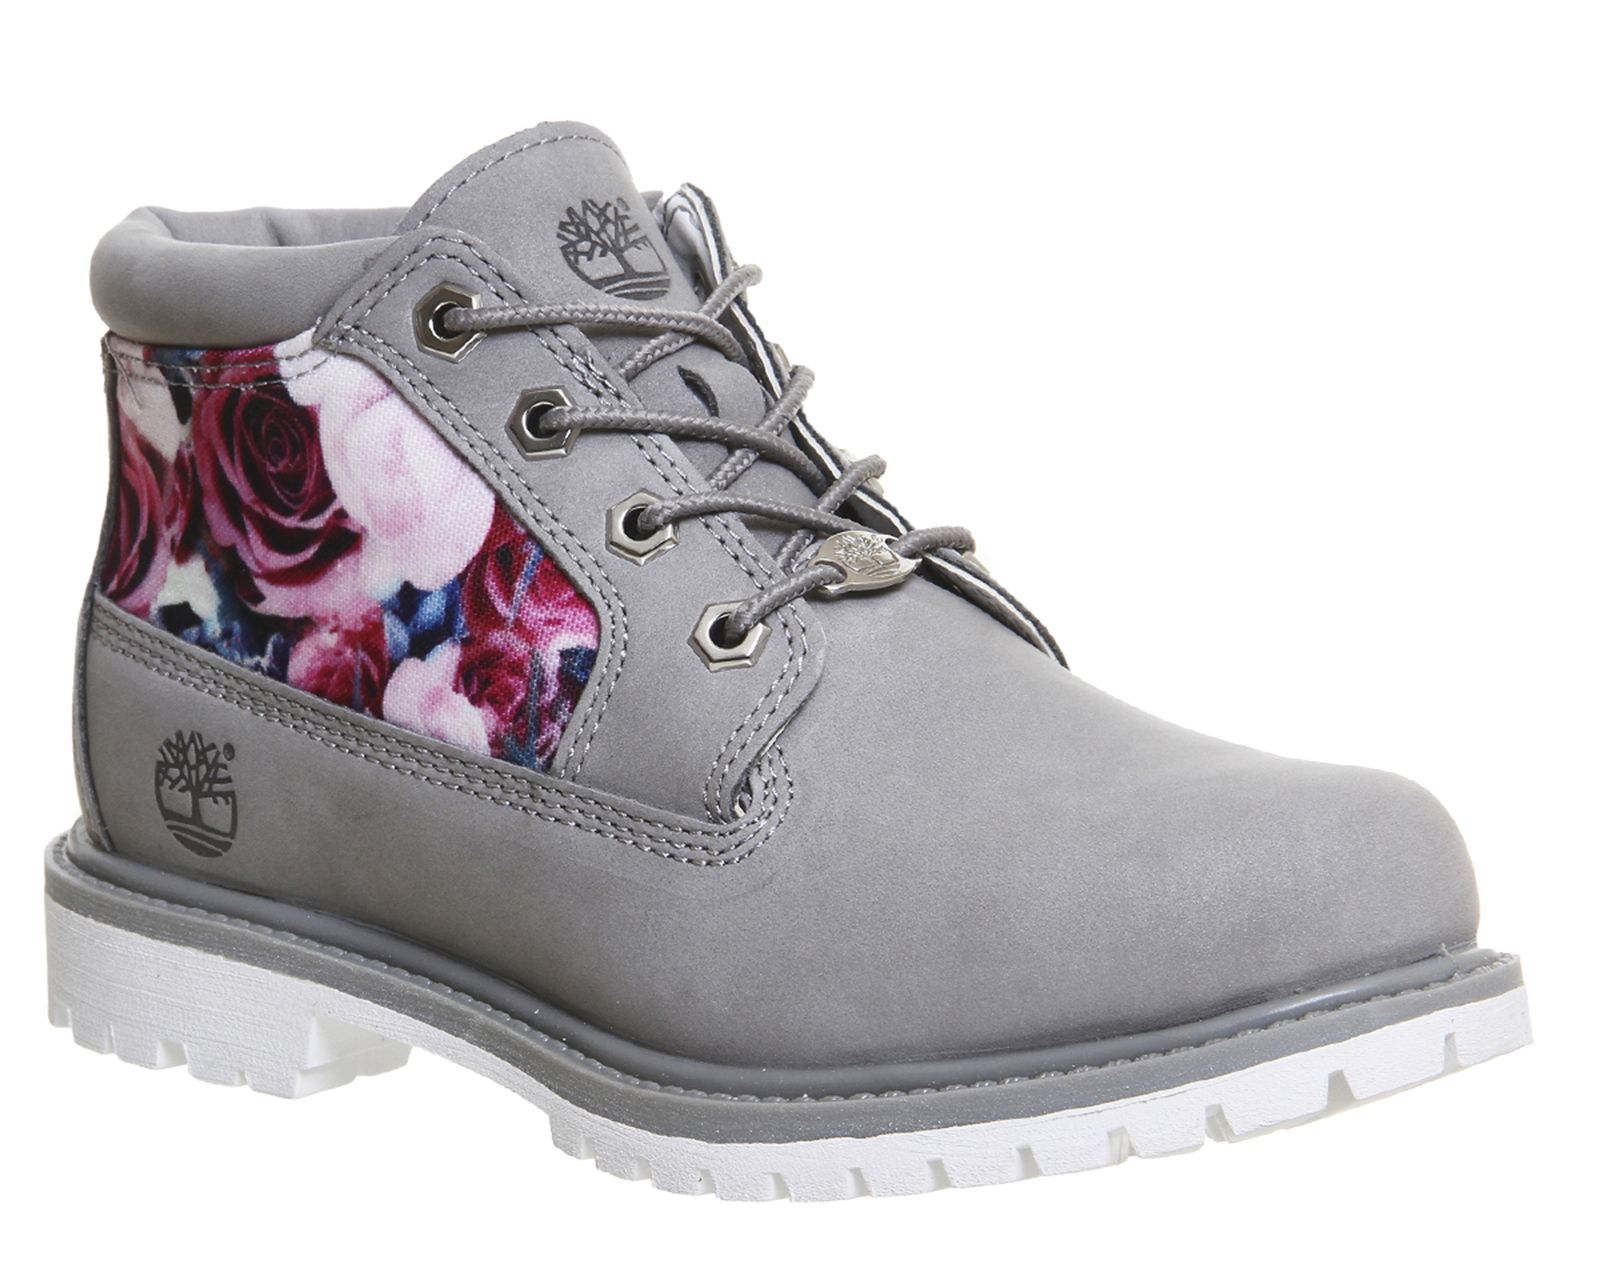 Timberland Nellie Chukka Double Waterproof Boots Floral Exclusive - Ankle  Boots ca1b6077ef